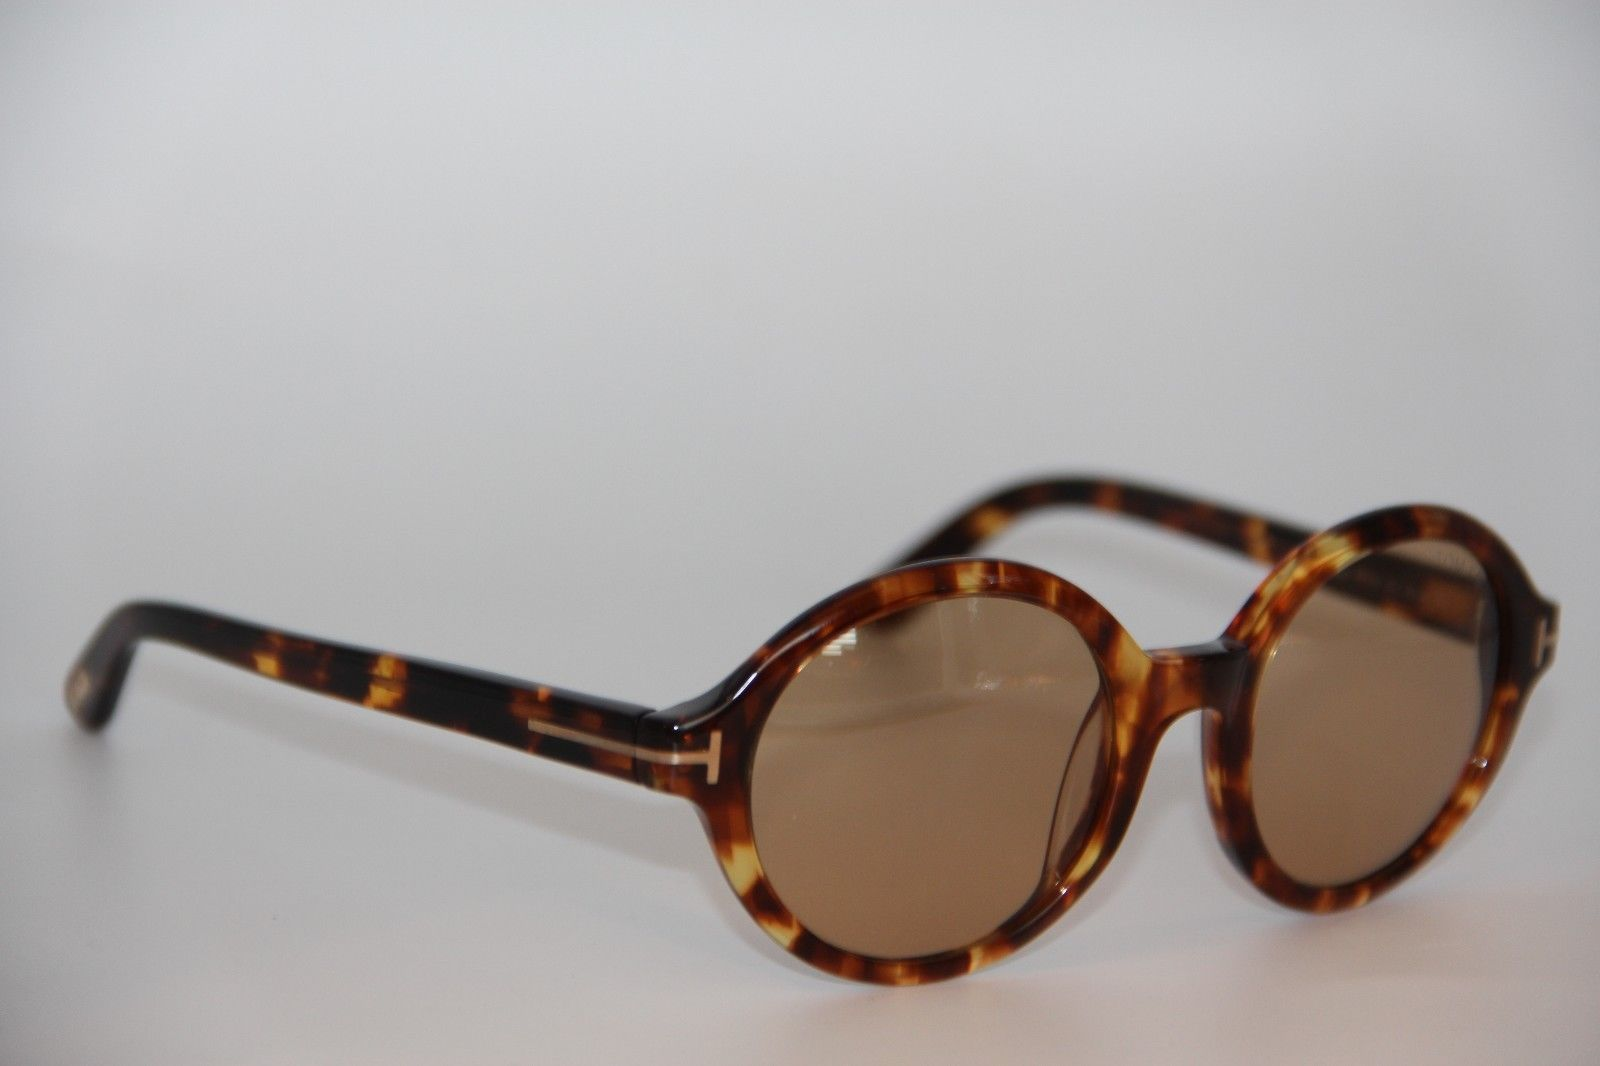 08a4793b4d New Tom Ford Tf 199 52J Carter Havana and similar items